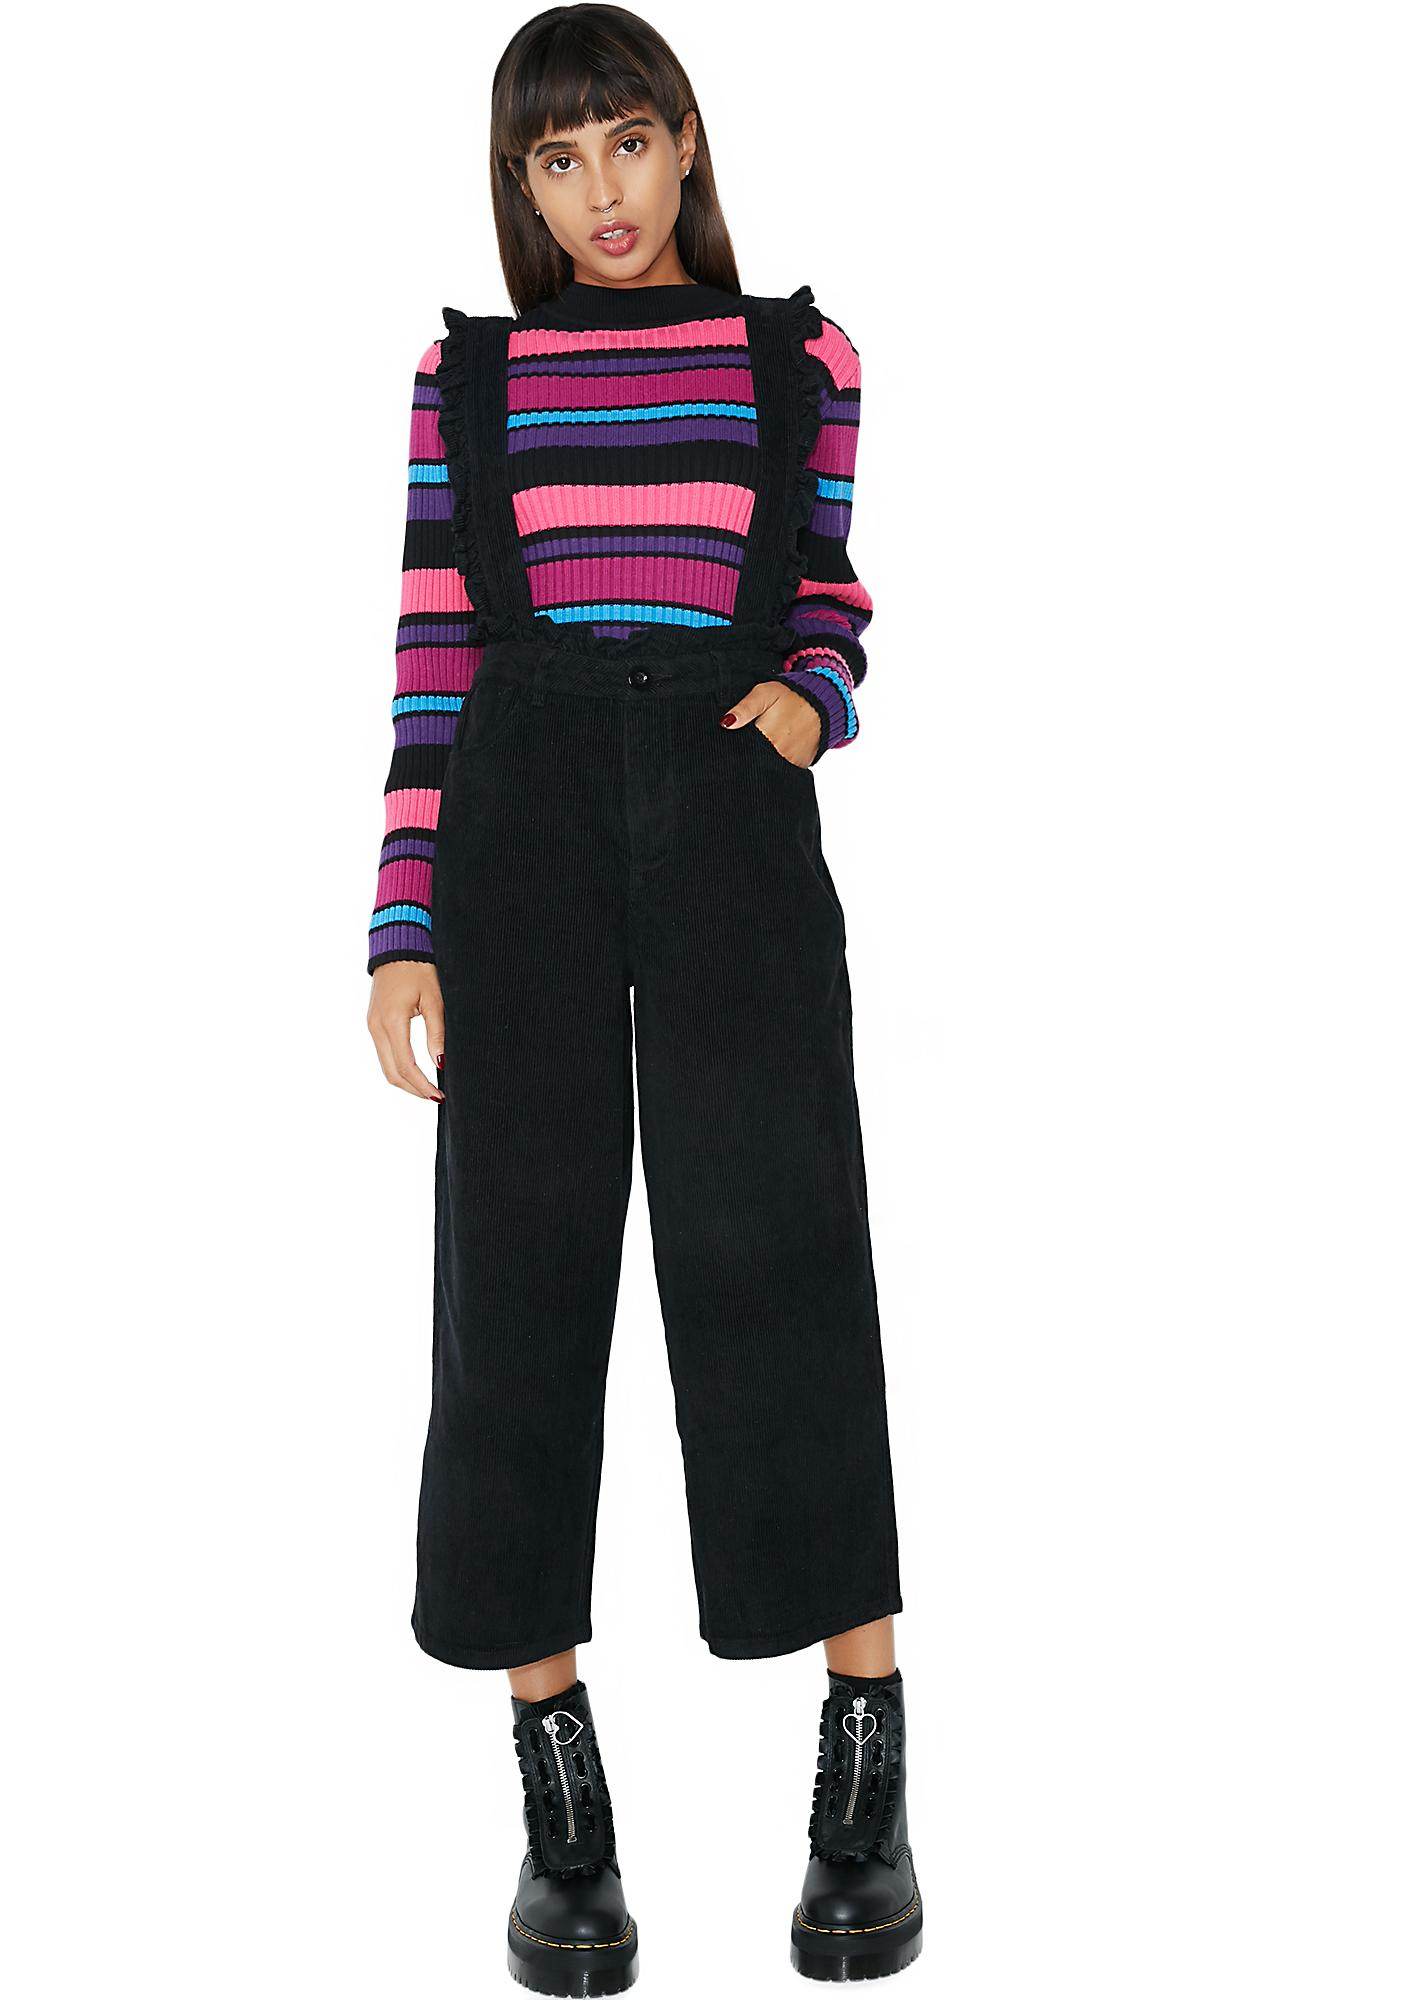 Lazy Oaf Frilly Suspender Trousers